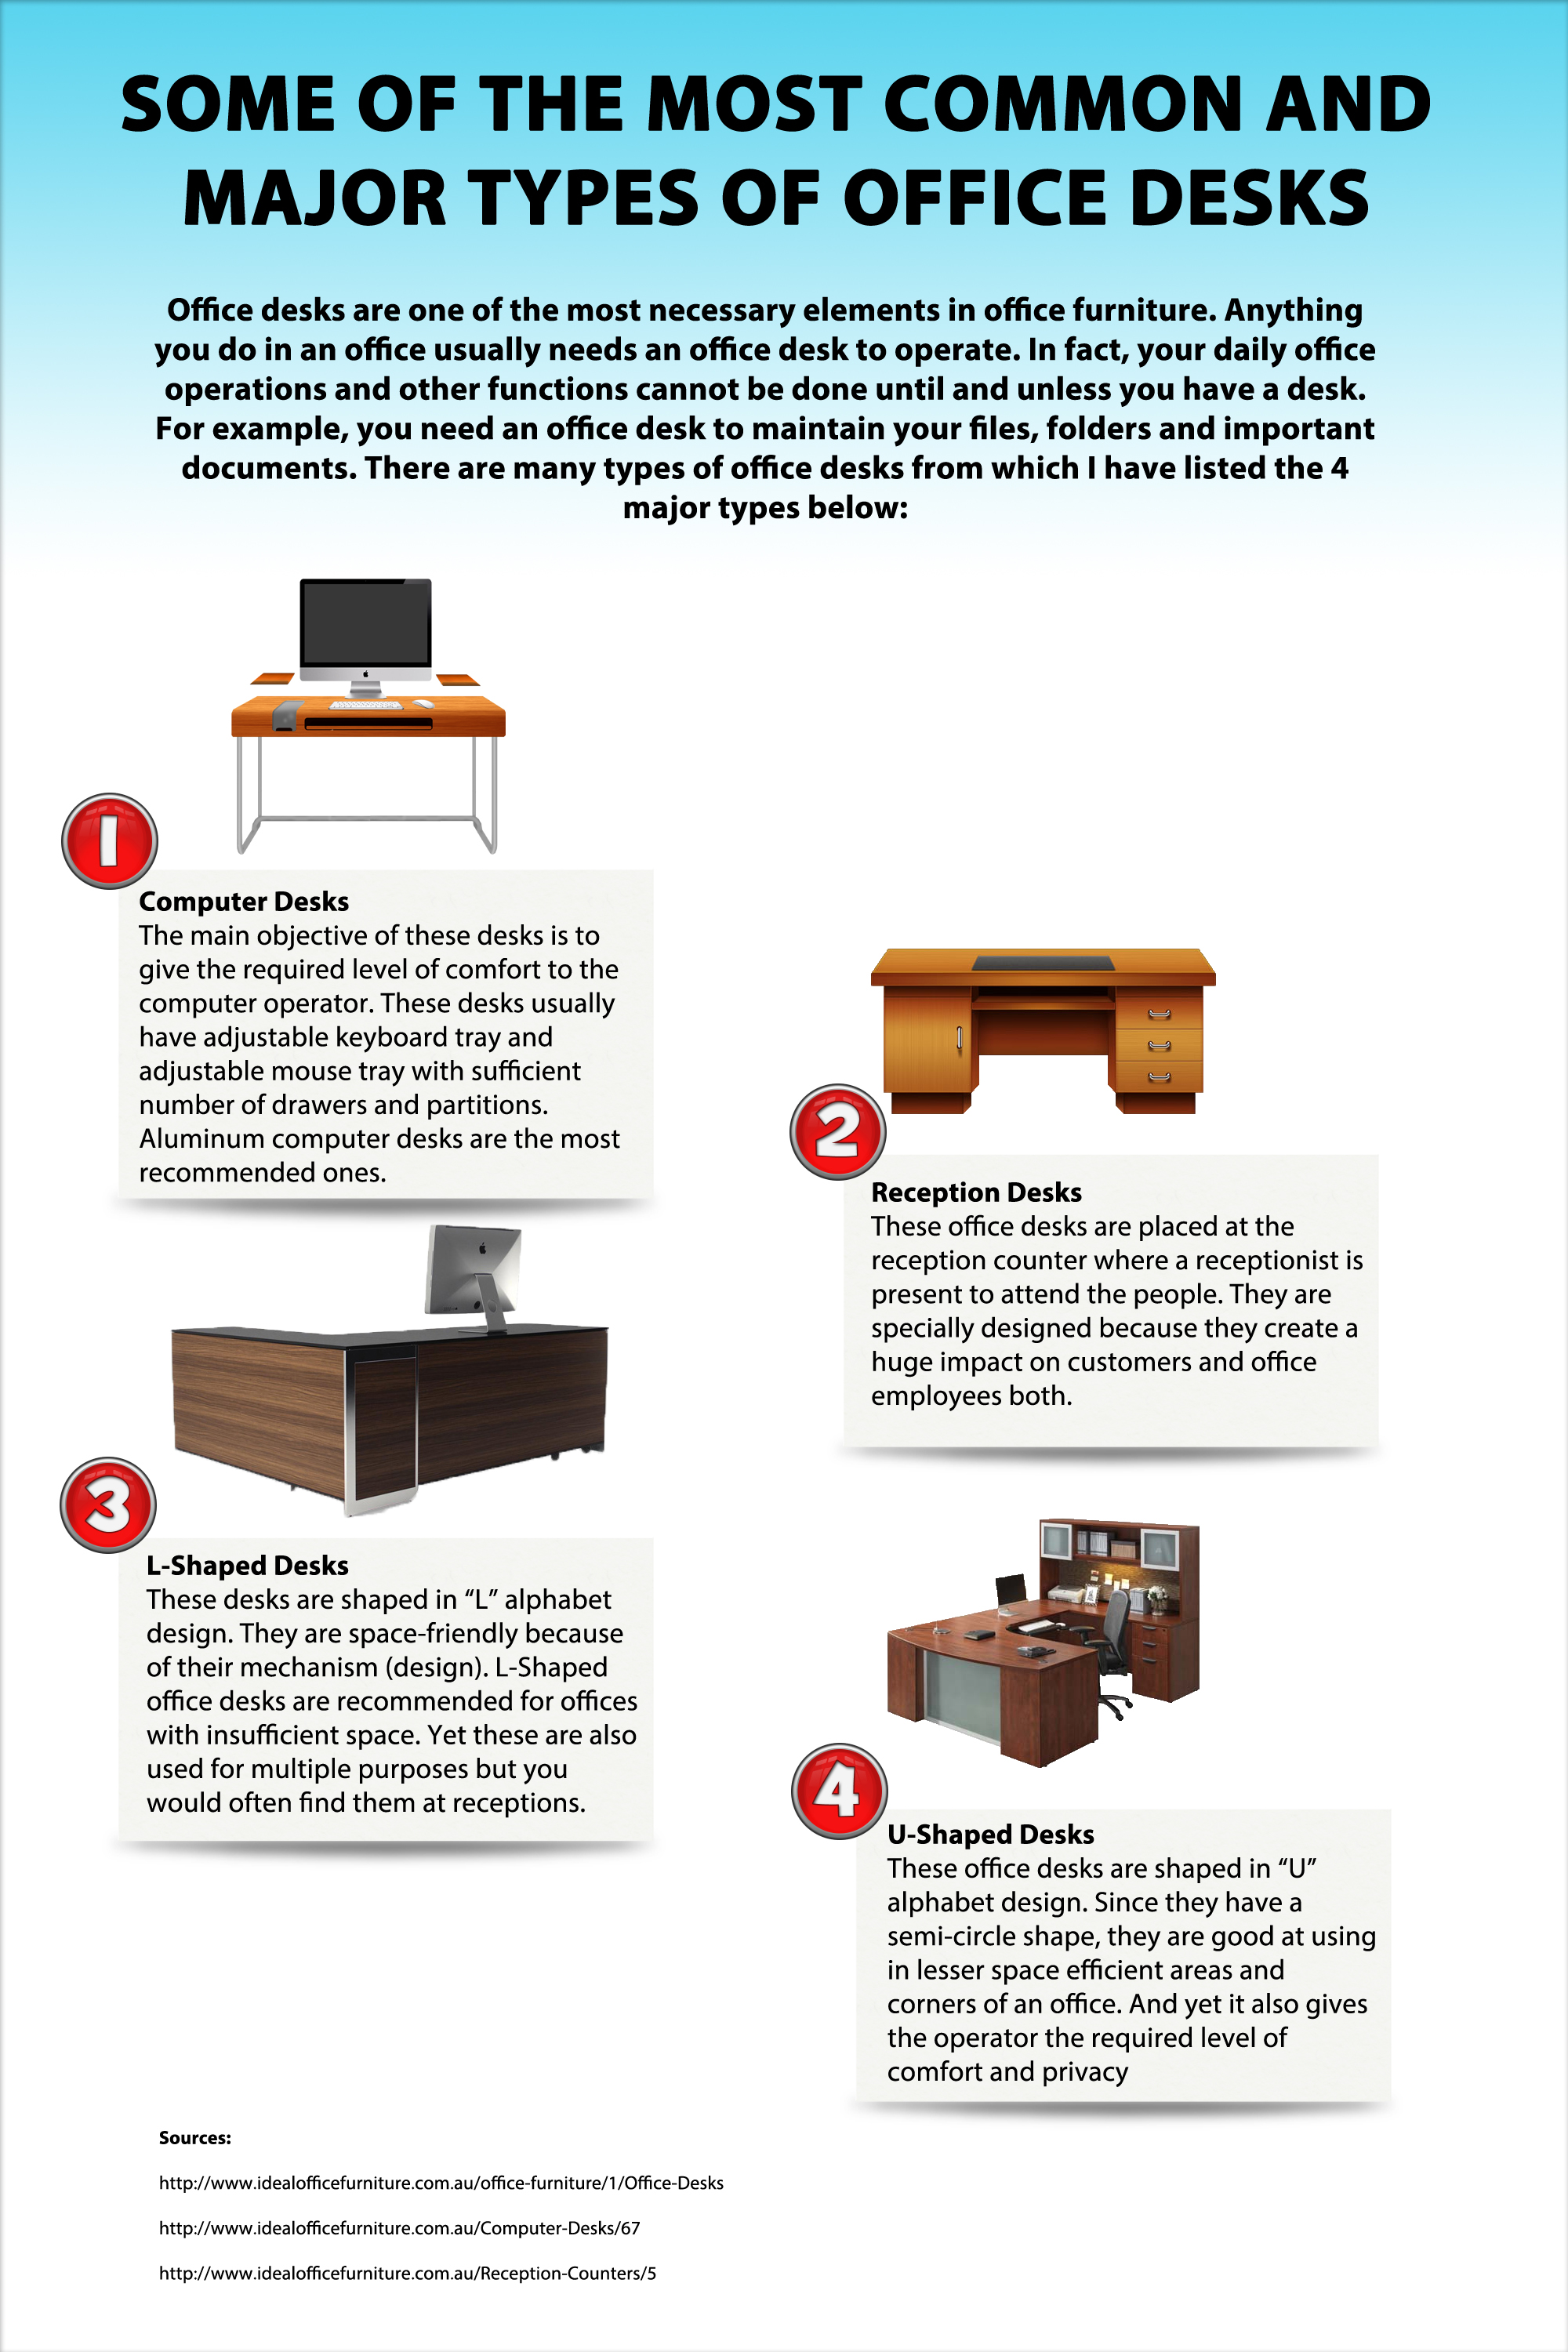 Types Of Desks Glamorous Some Of The Most Common And Major Types Of Office Desks  Visual.ly Design Ideas